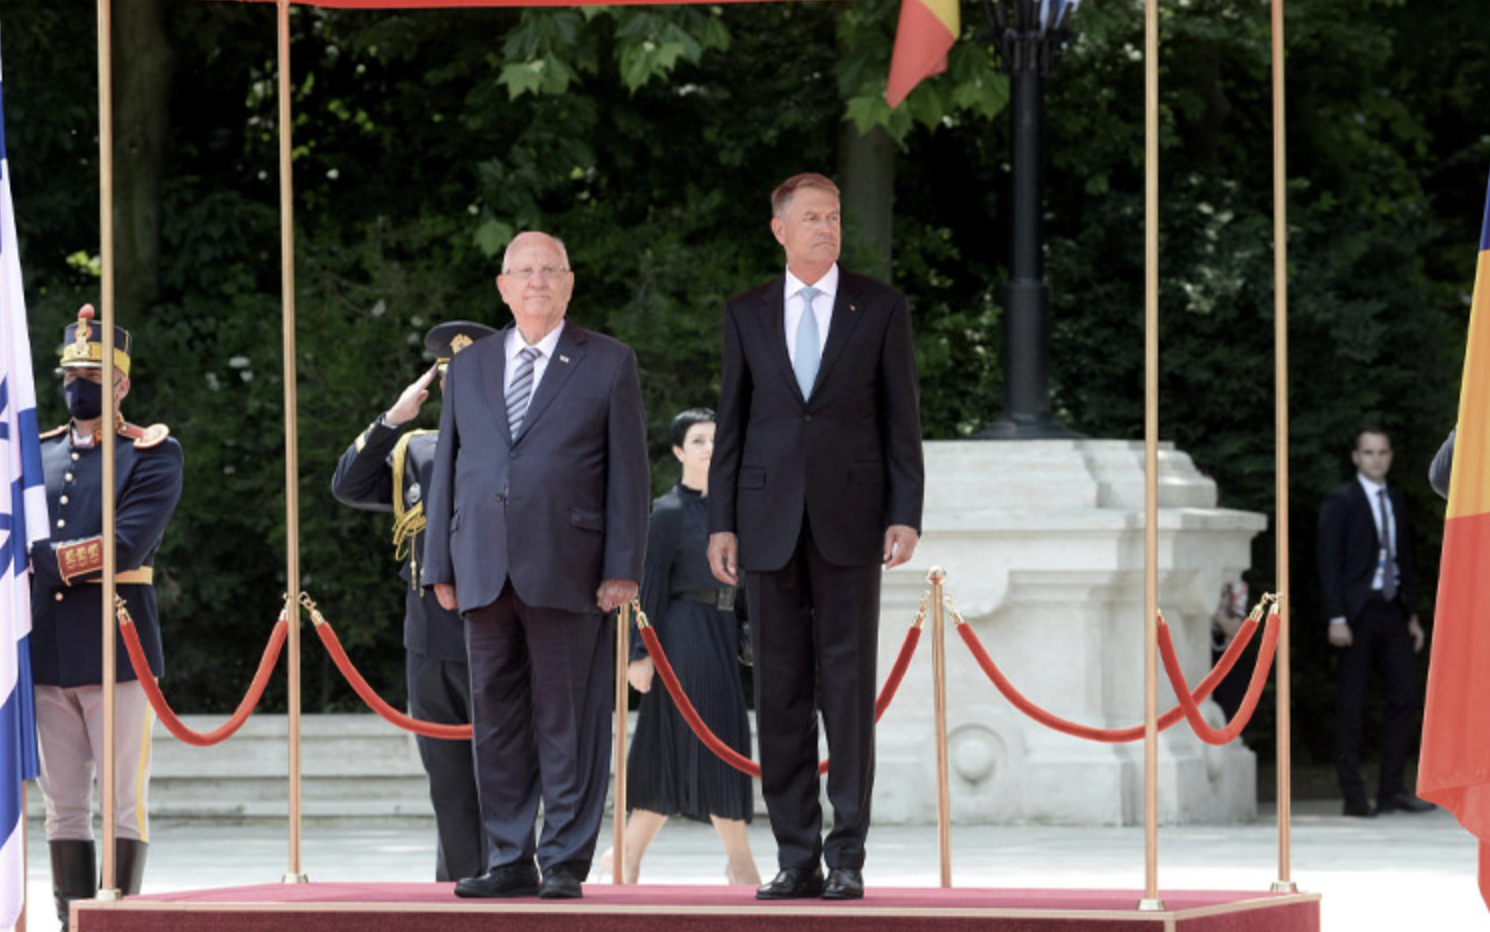 Romania: Israeli President pays official visit for second day